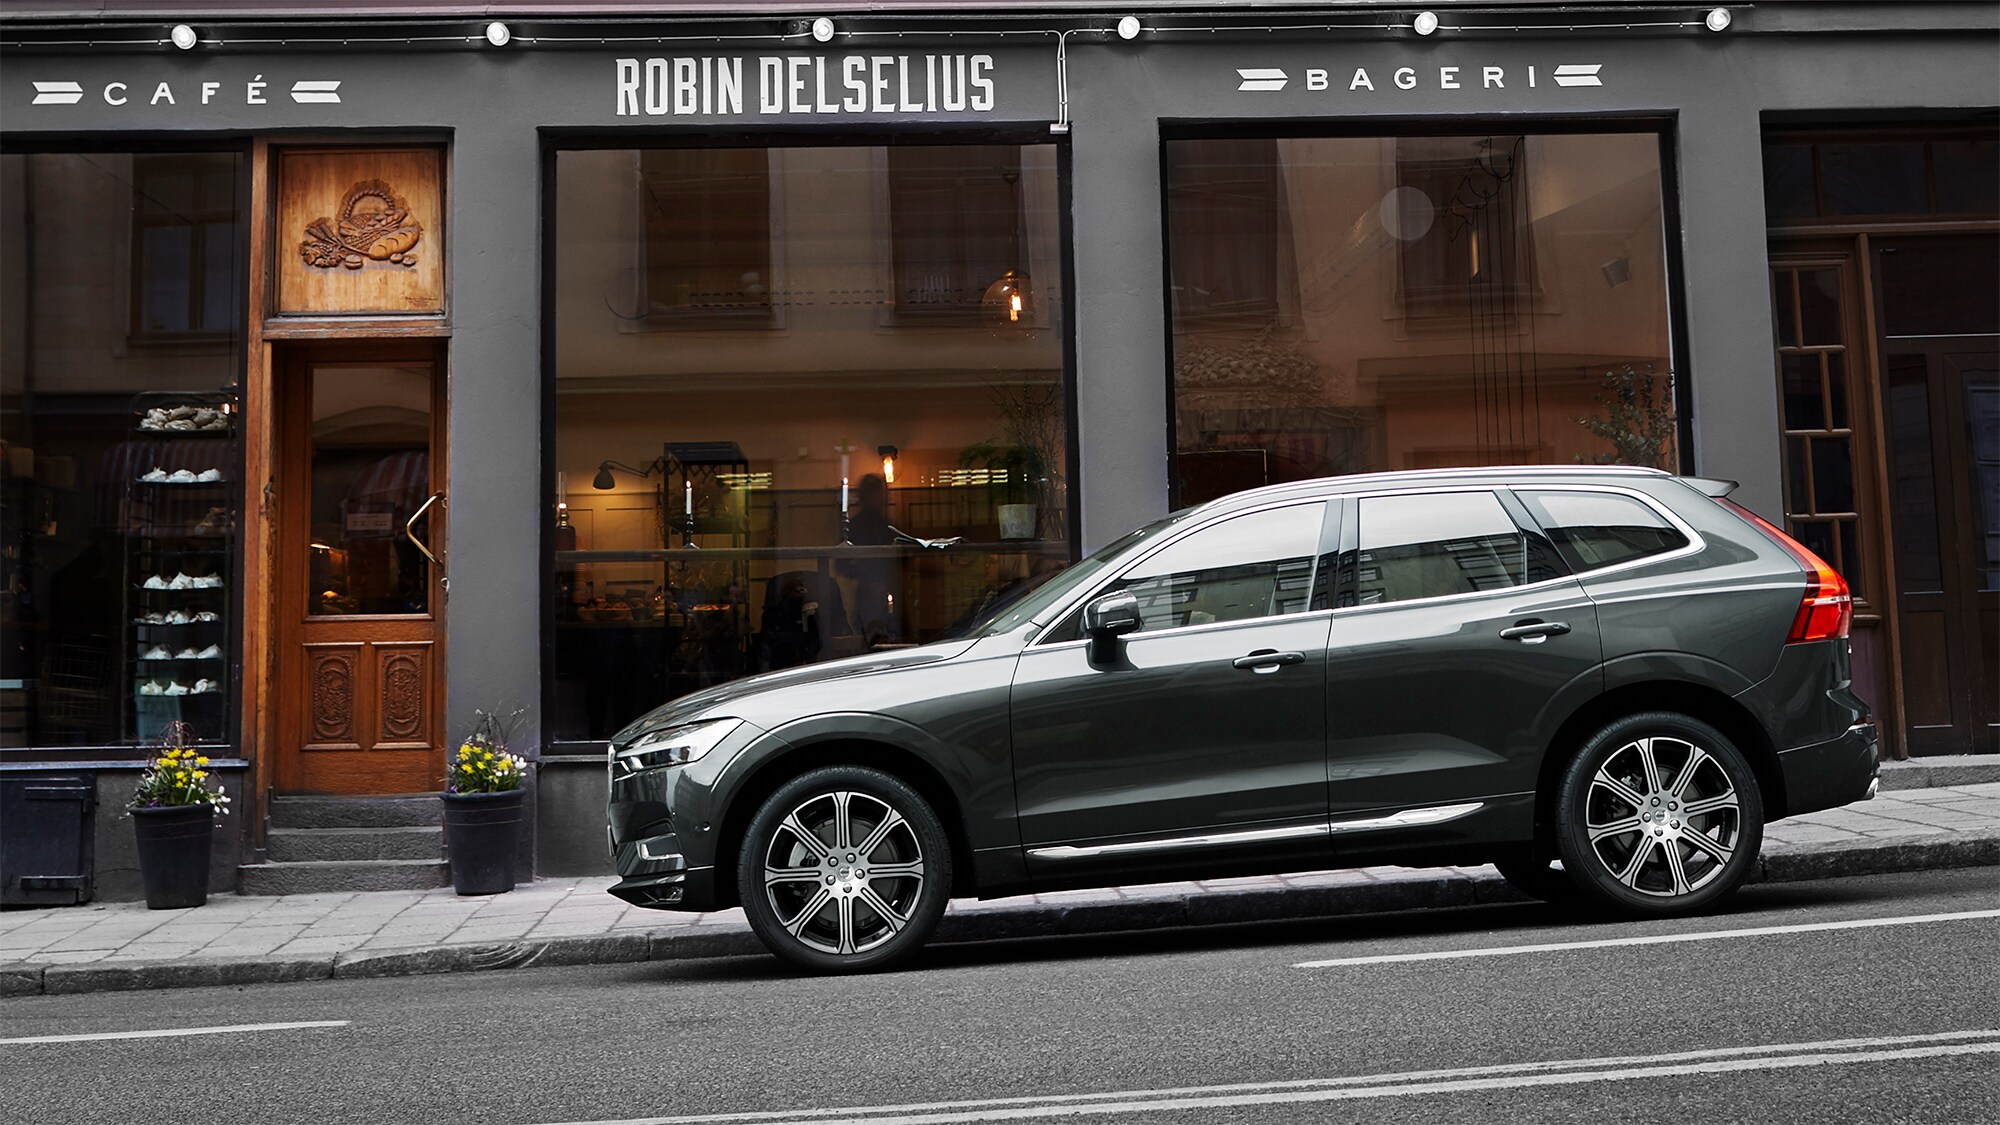 Volvo XC60 parked in front of the Robin Delselius bakery in Stockholm